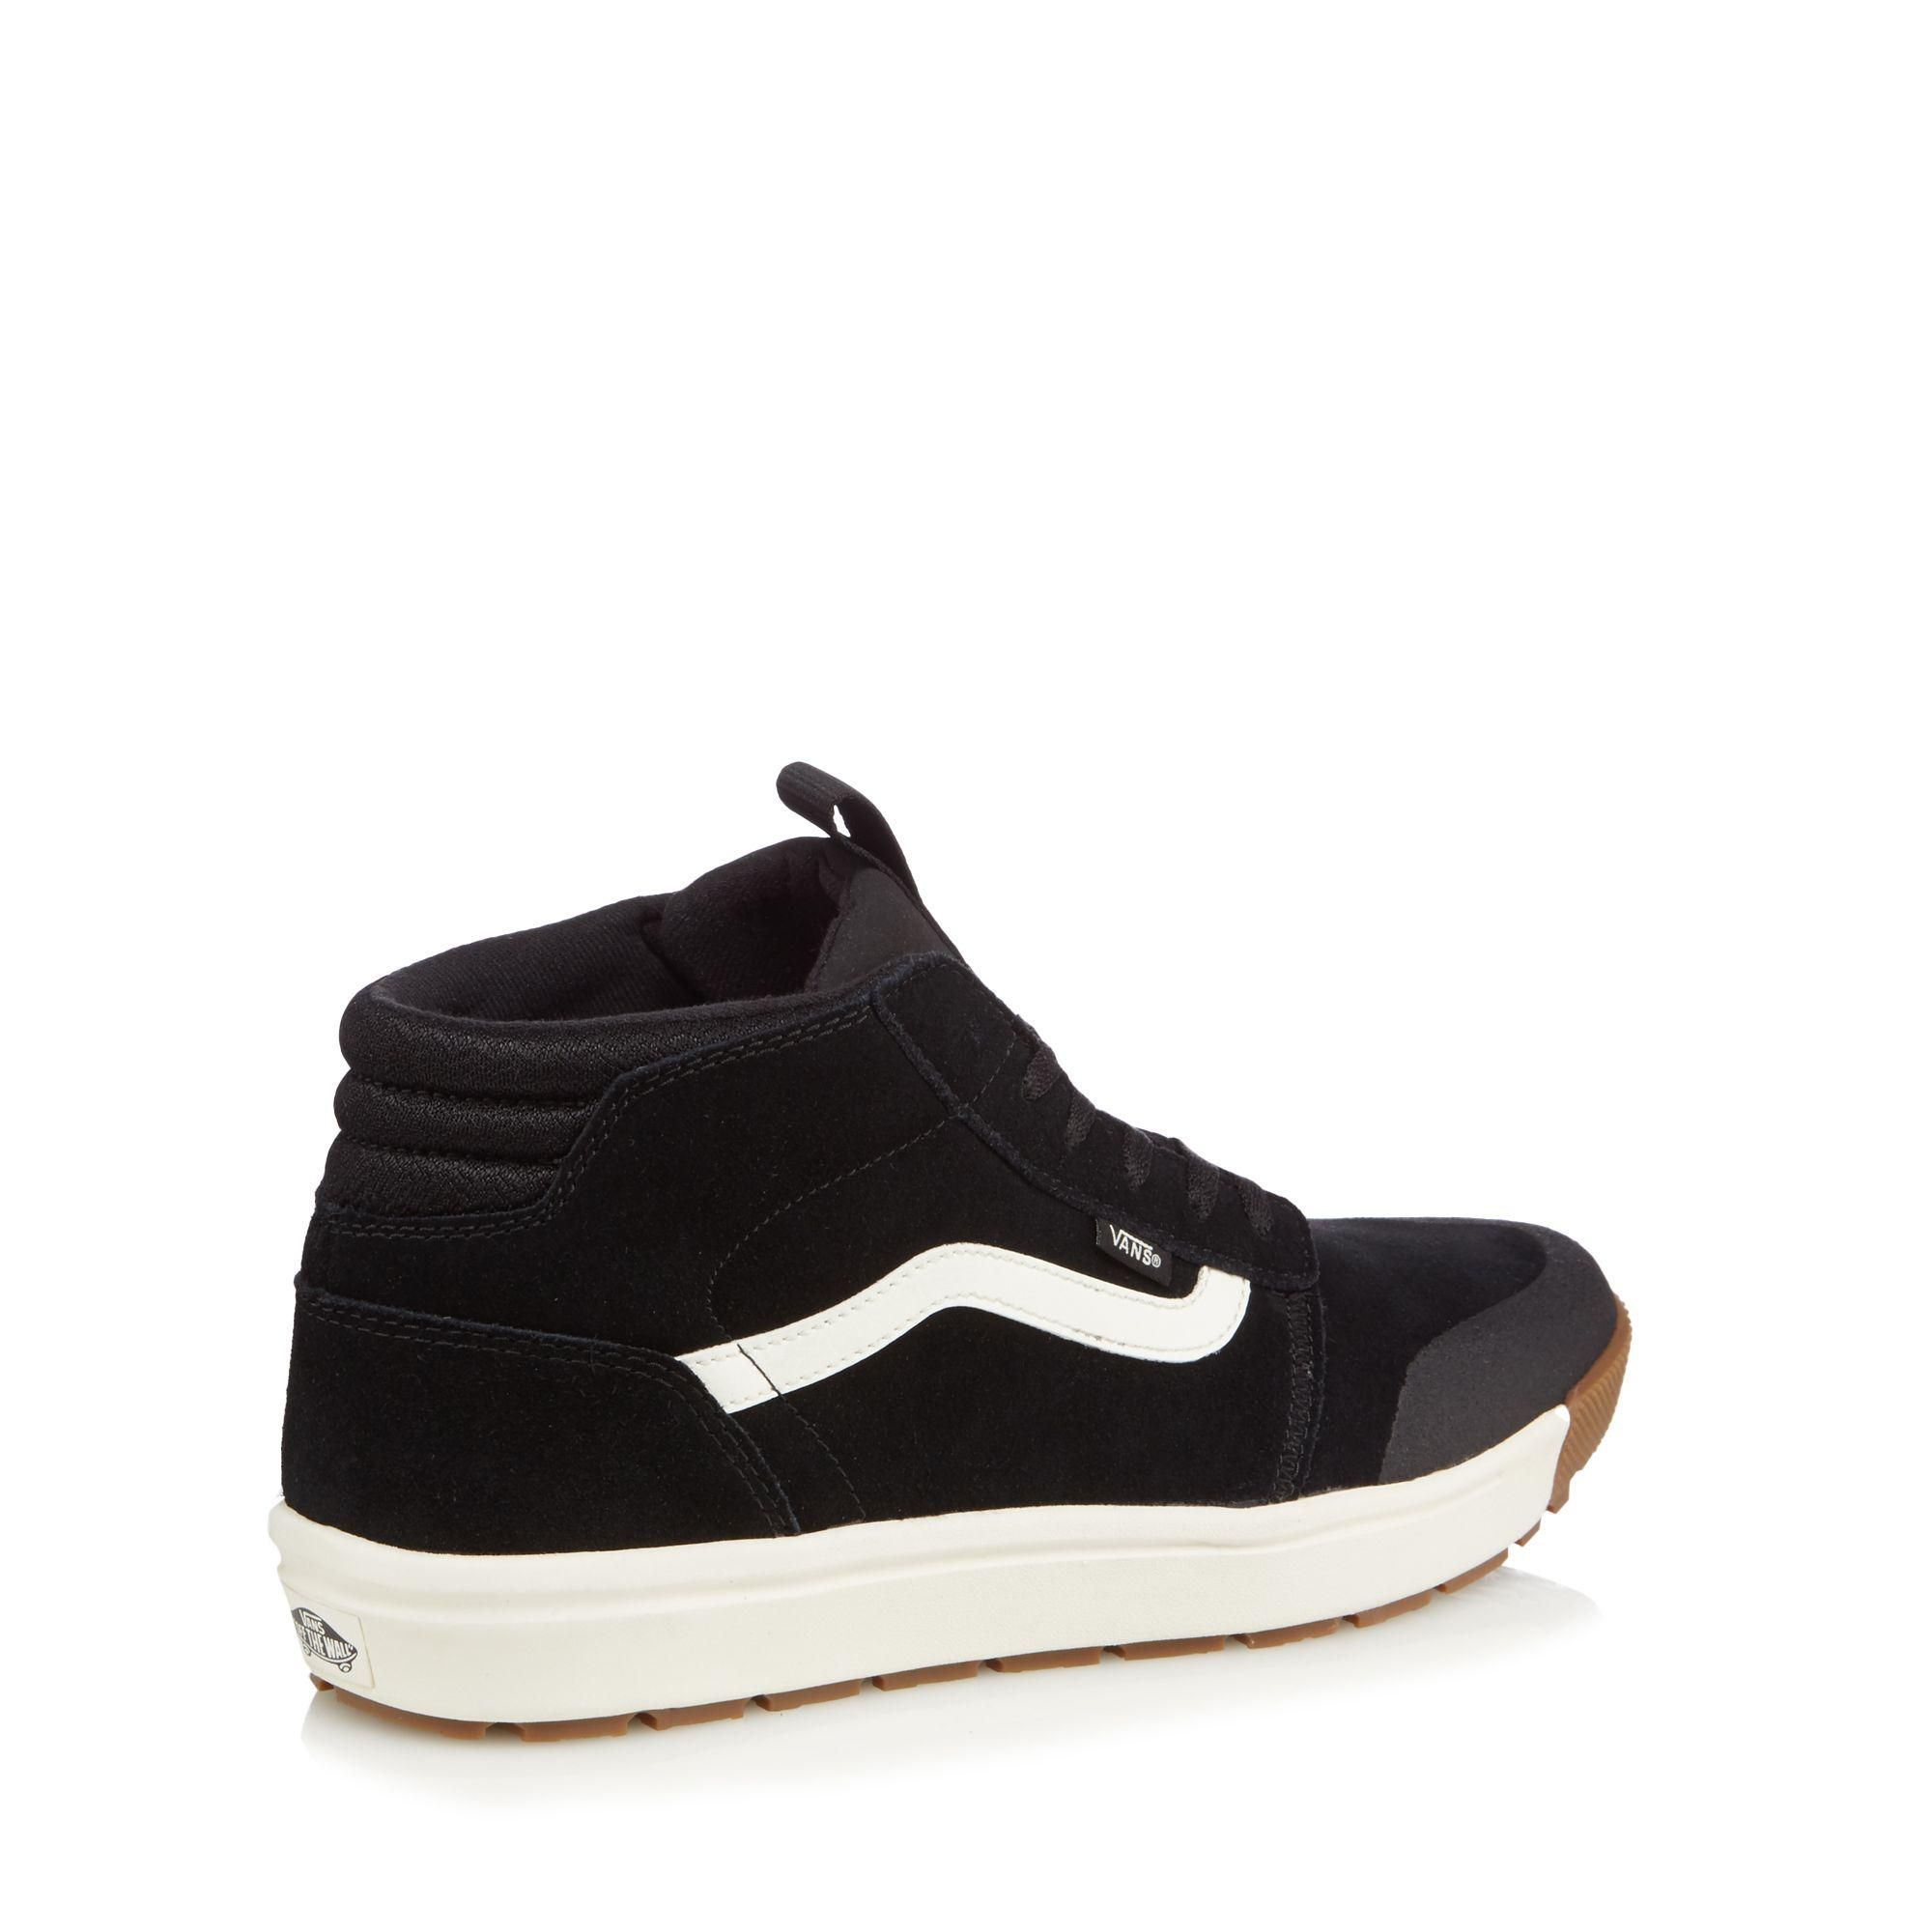 Black suede 'Quest' high top trainers discount top quality sale cheap price outlet for sale hnW56L